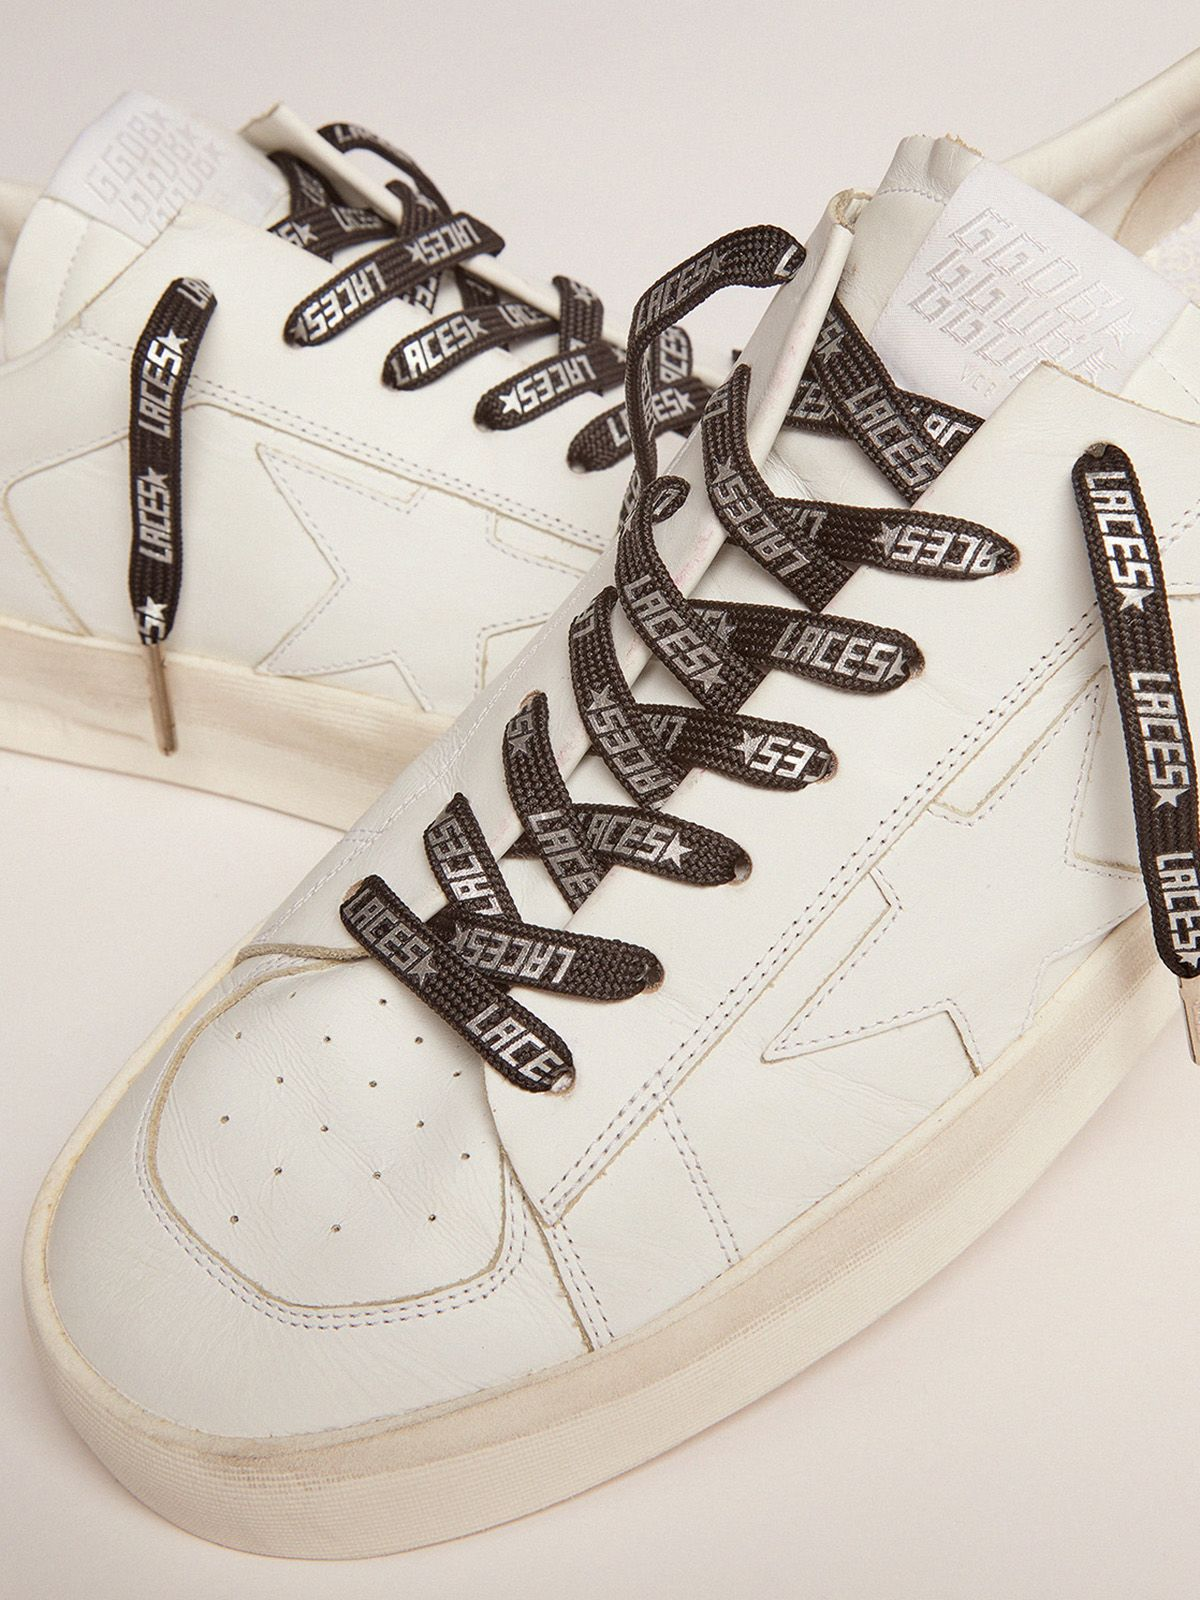 Golden Goose - Men's black laces with silver laces print in